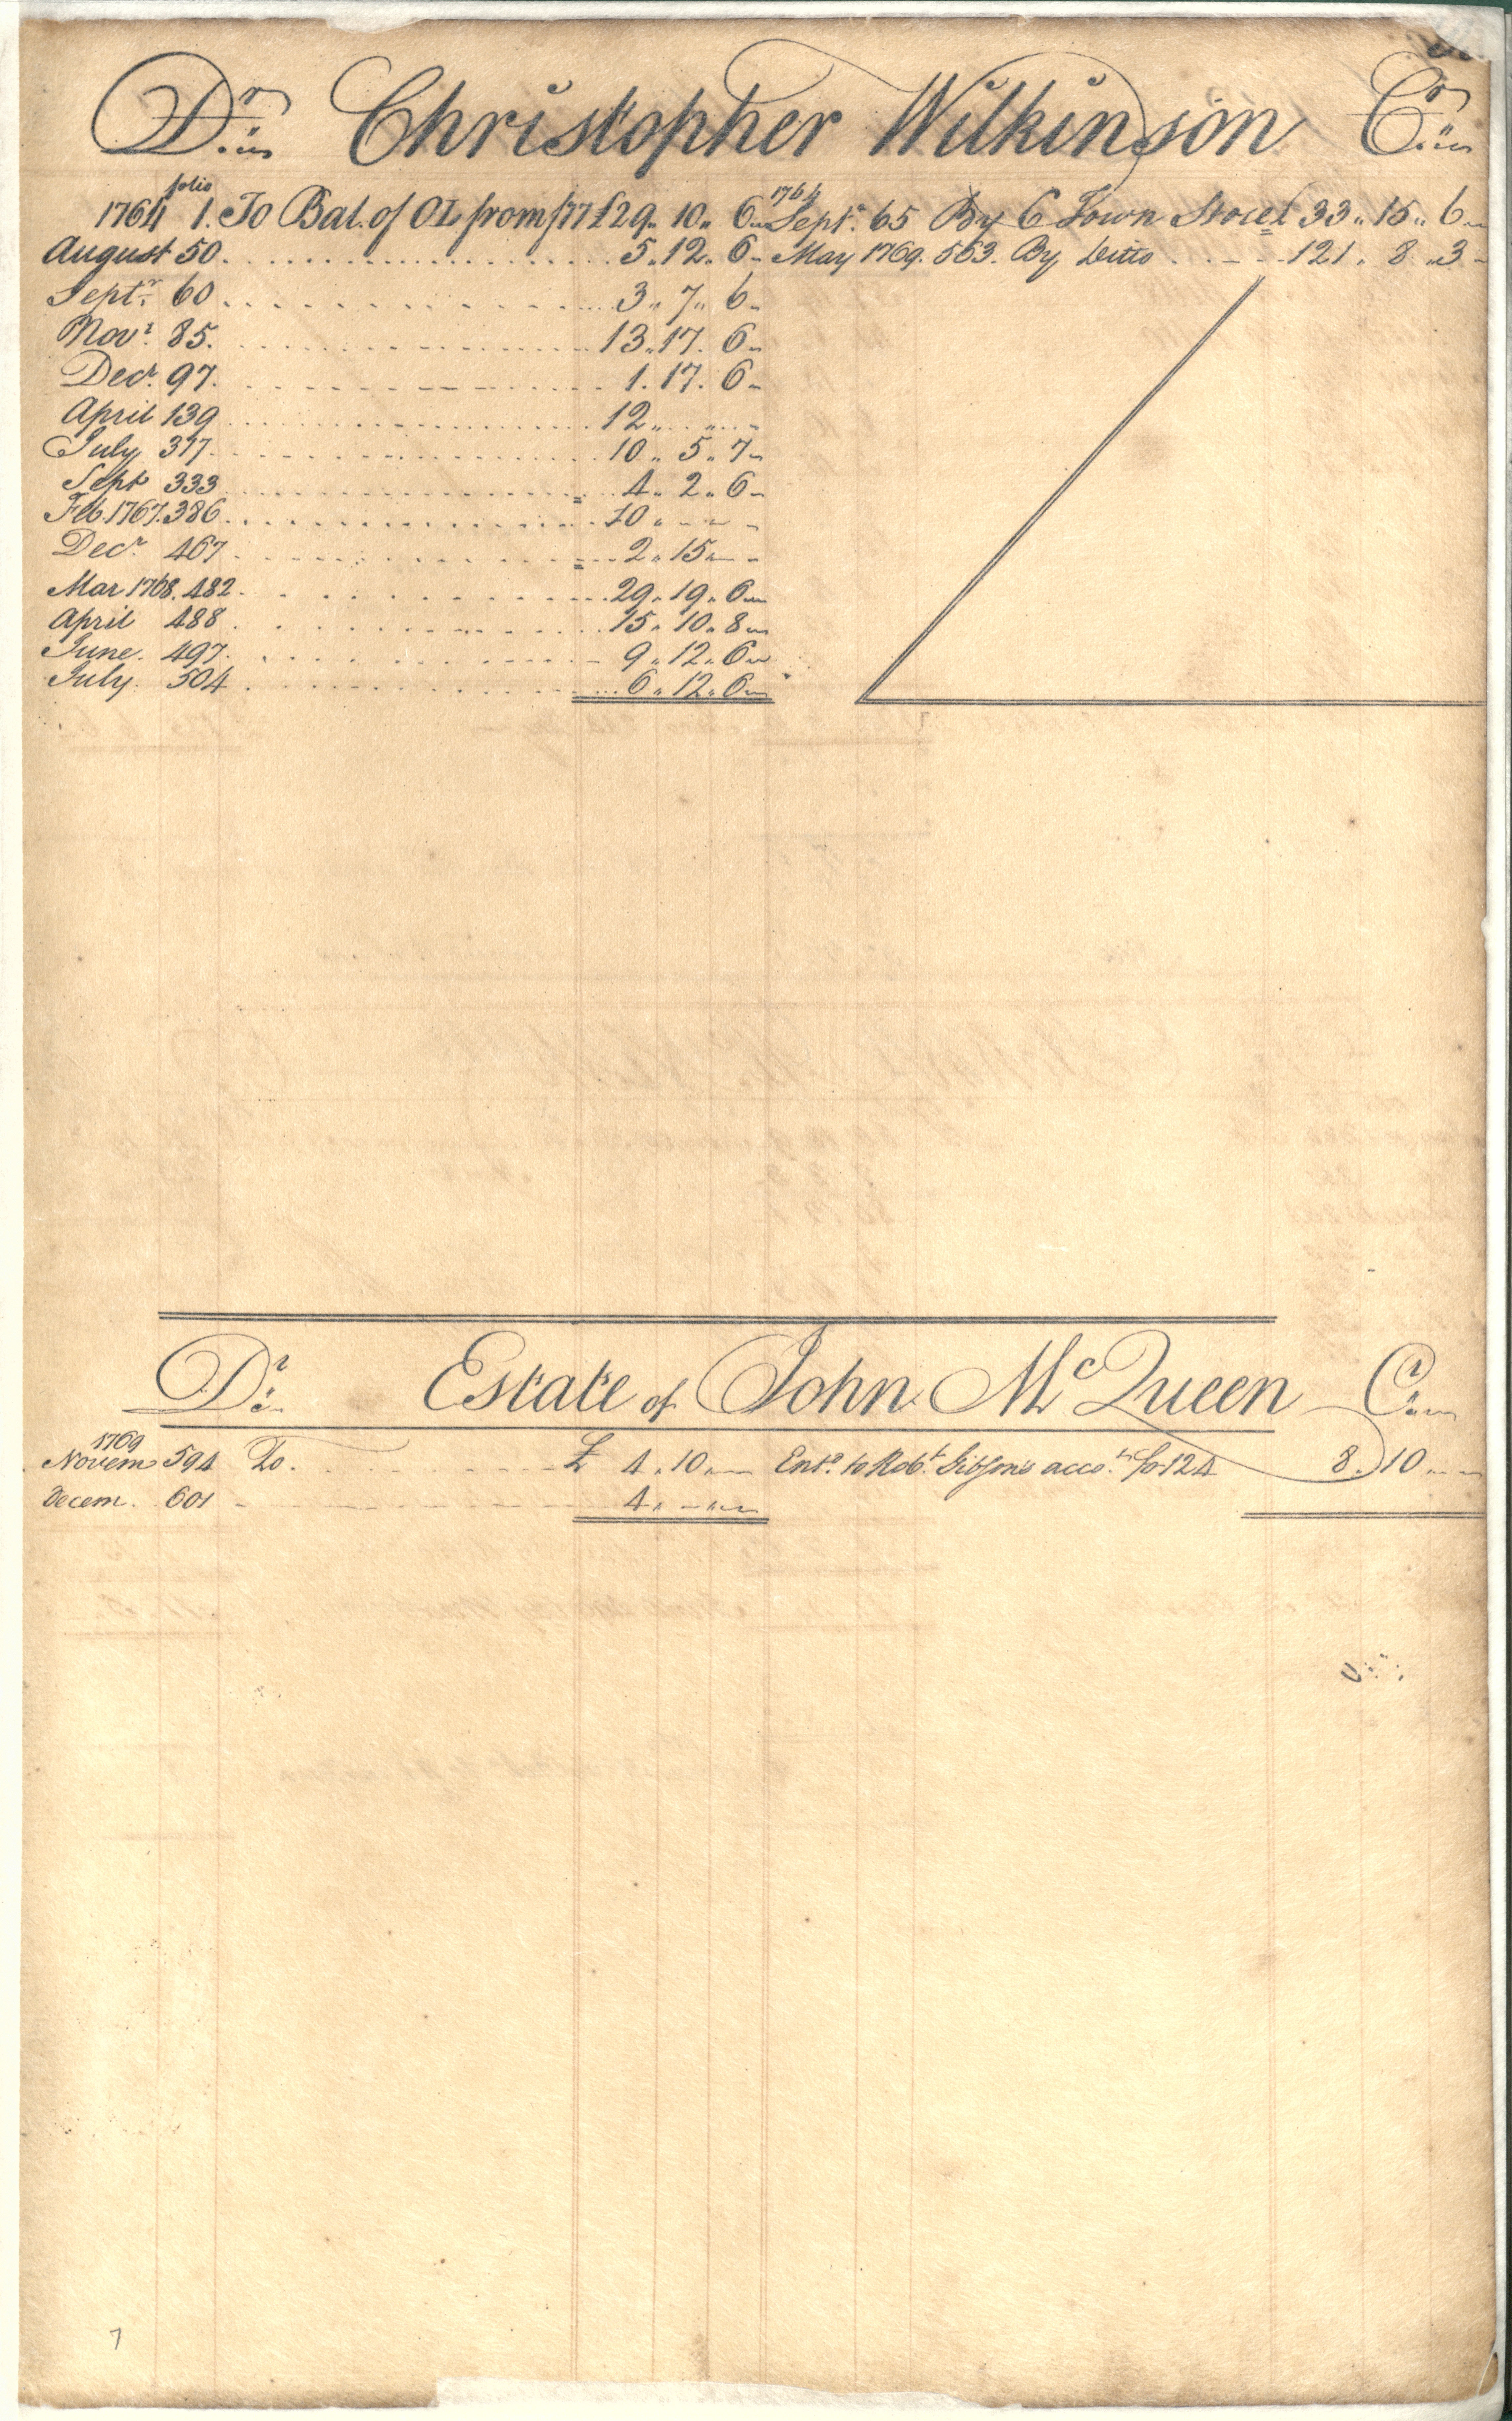 Plowden Weston's Business Ledger, page 38